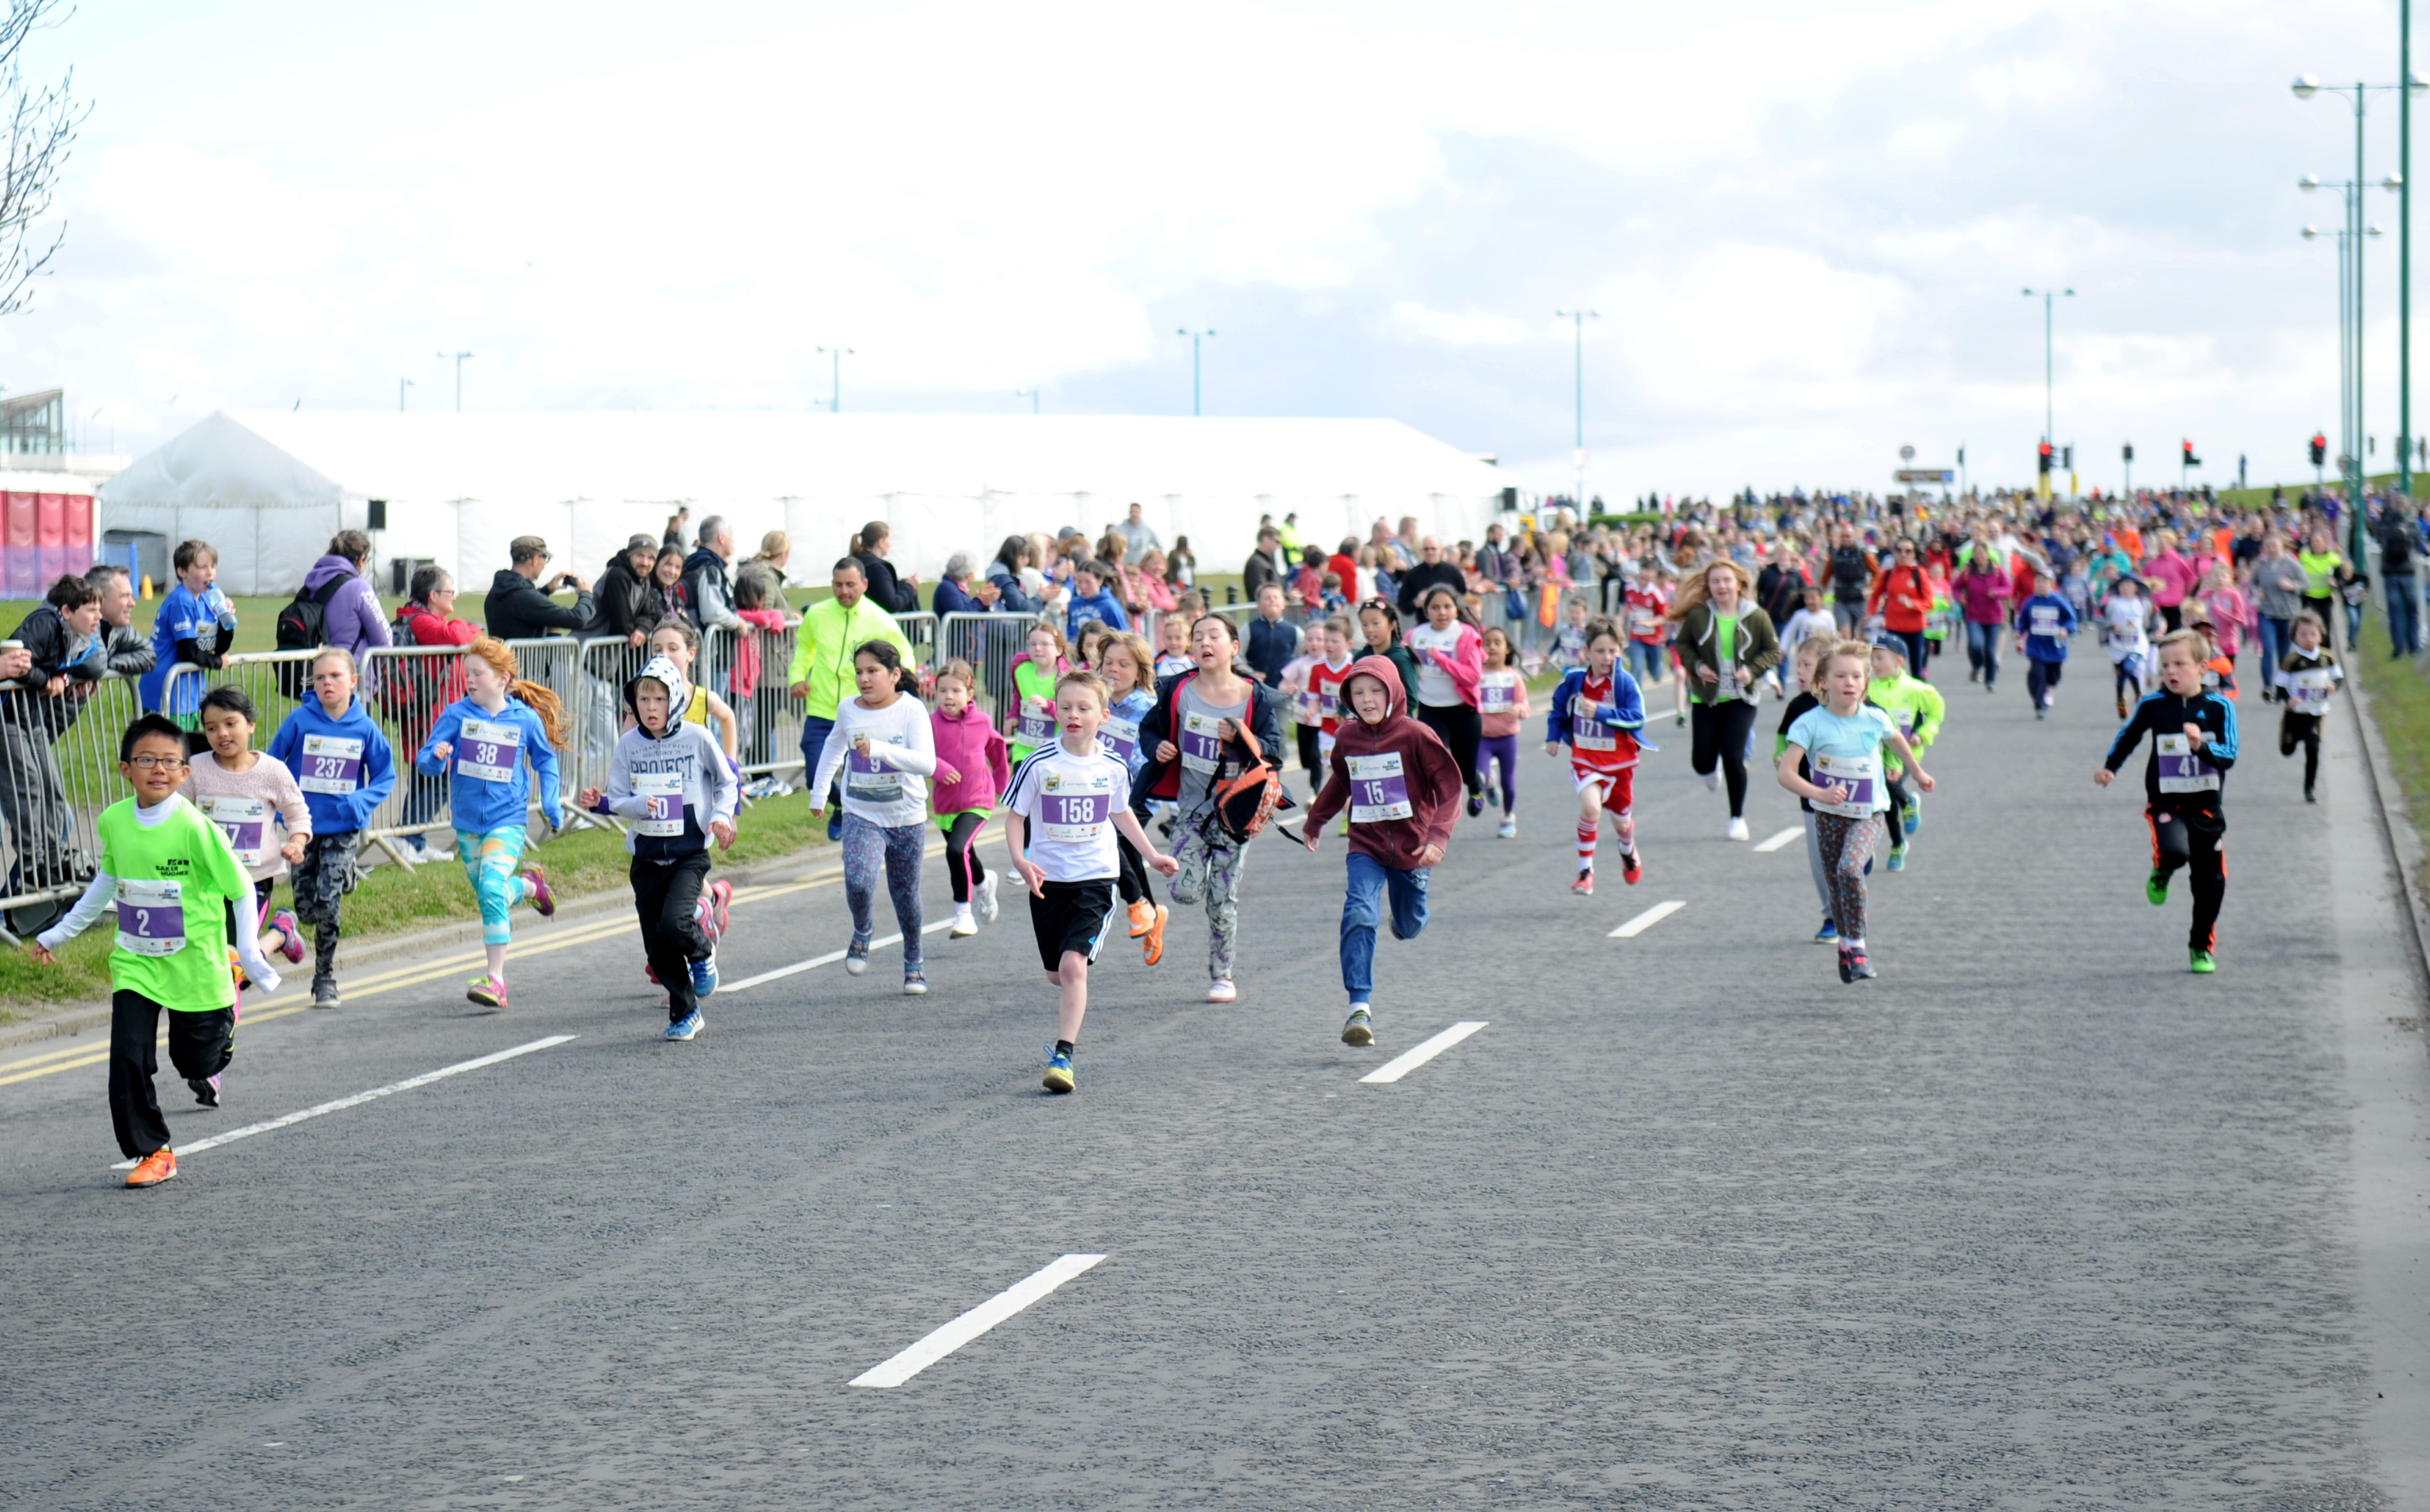 Lots of children enjoyed the fun run as part of the Baker Hughes 10K race in May.